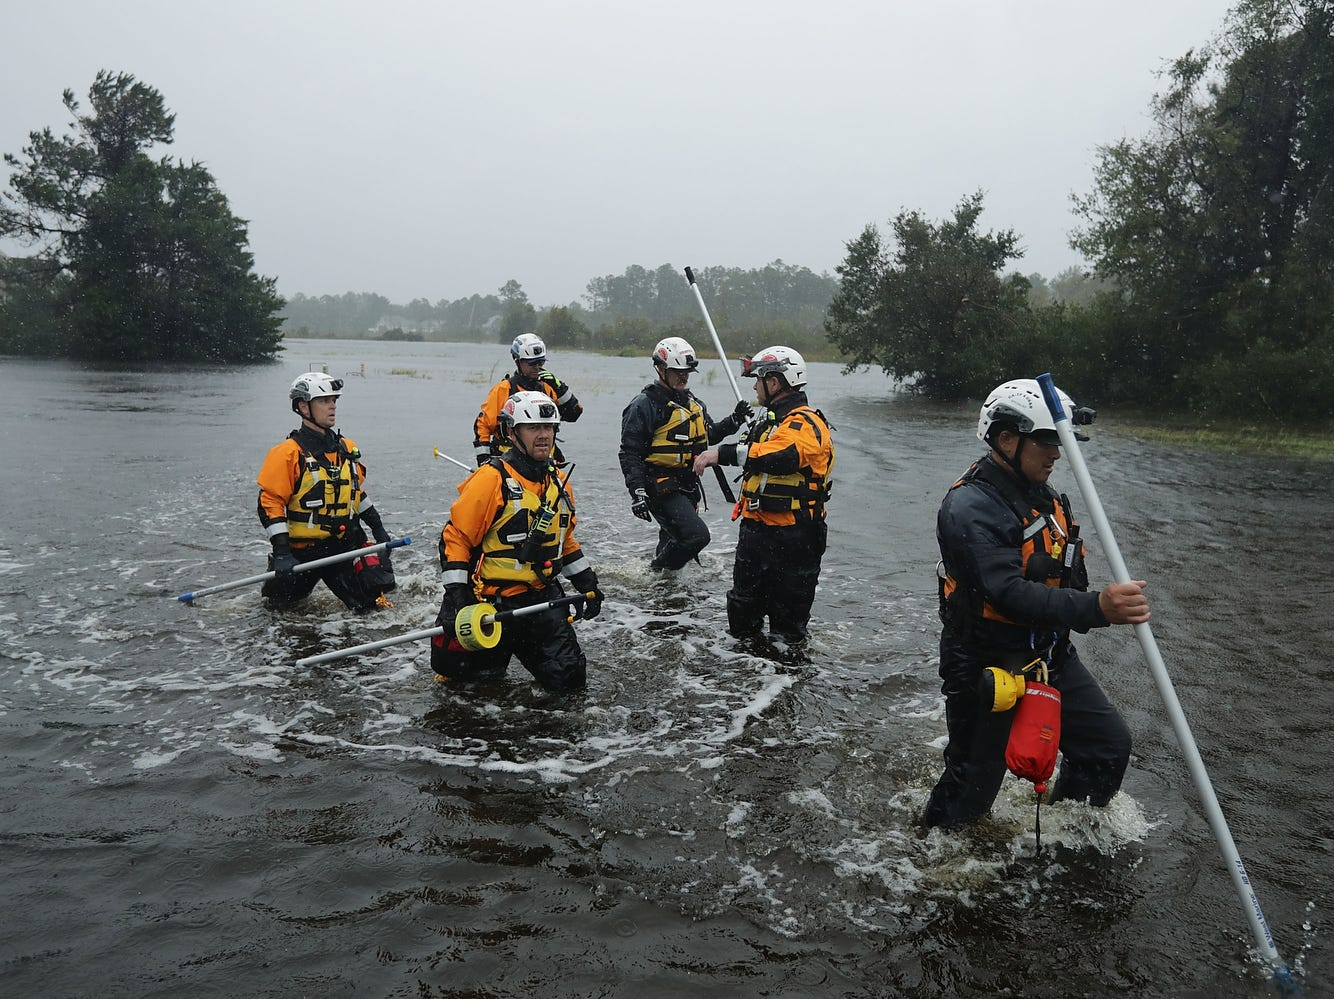 Members of the FEMA Urban Search and Rescue Task Force 4 from Oakland, California, search a flooded neighborhood for evacuees during Hurricane Florence, Friday, in Fairfield Harbour, N.C.,  Hurricane Florence made landfall in North Carolina as a Category 1 storm and flooding from the heavy rain is forcing hundreds of people to call for emergency rescues in the communities around New Bern, N.C., which sits at the confluence of the Neuse and Trent rivers.